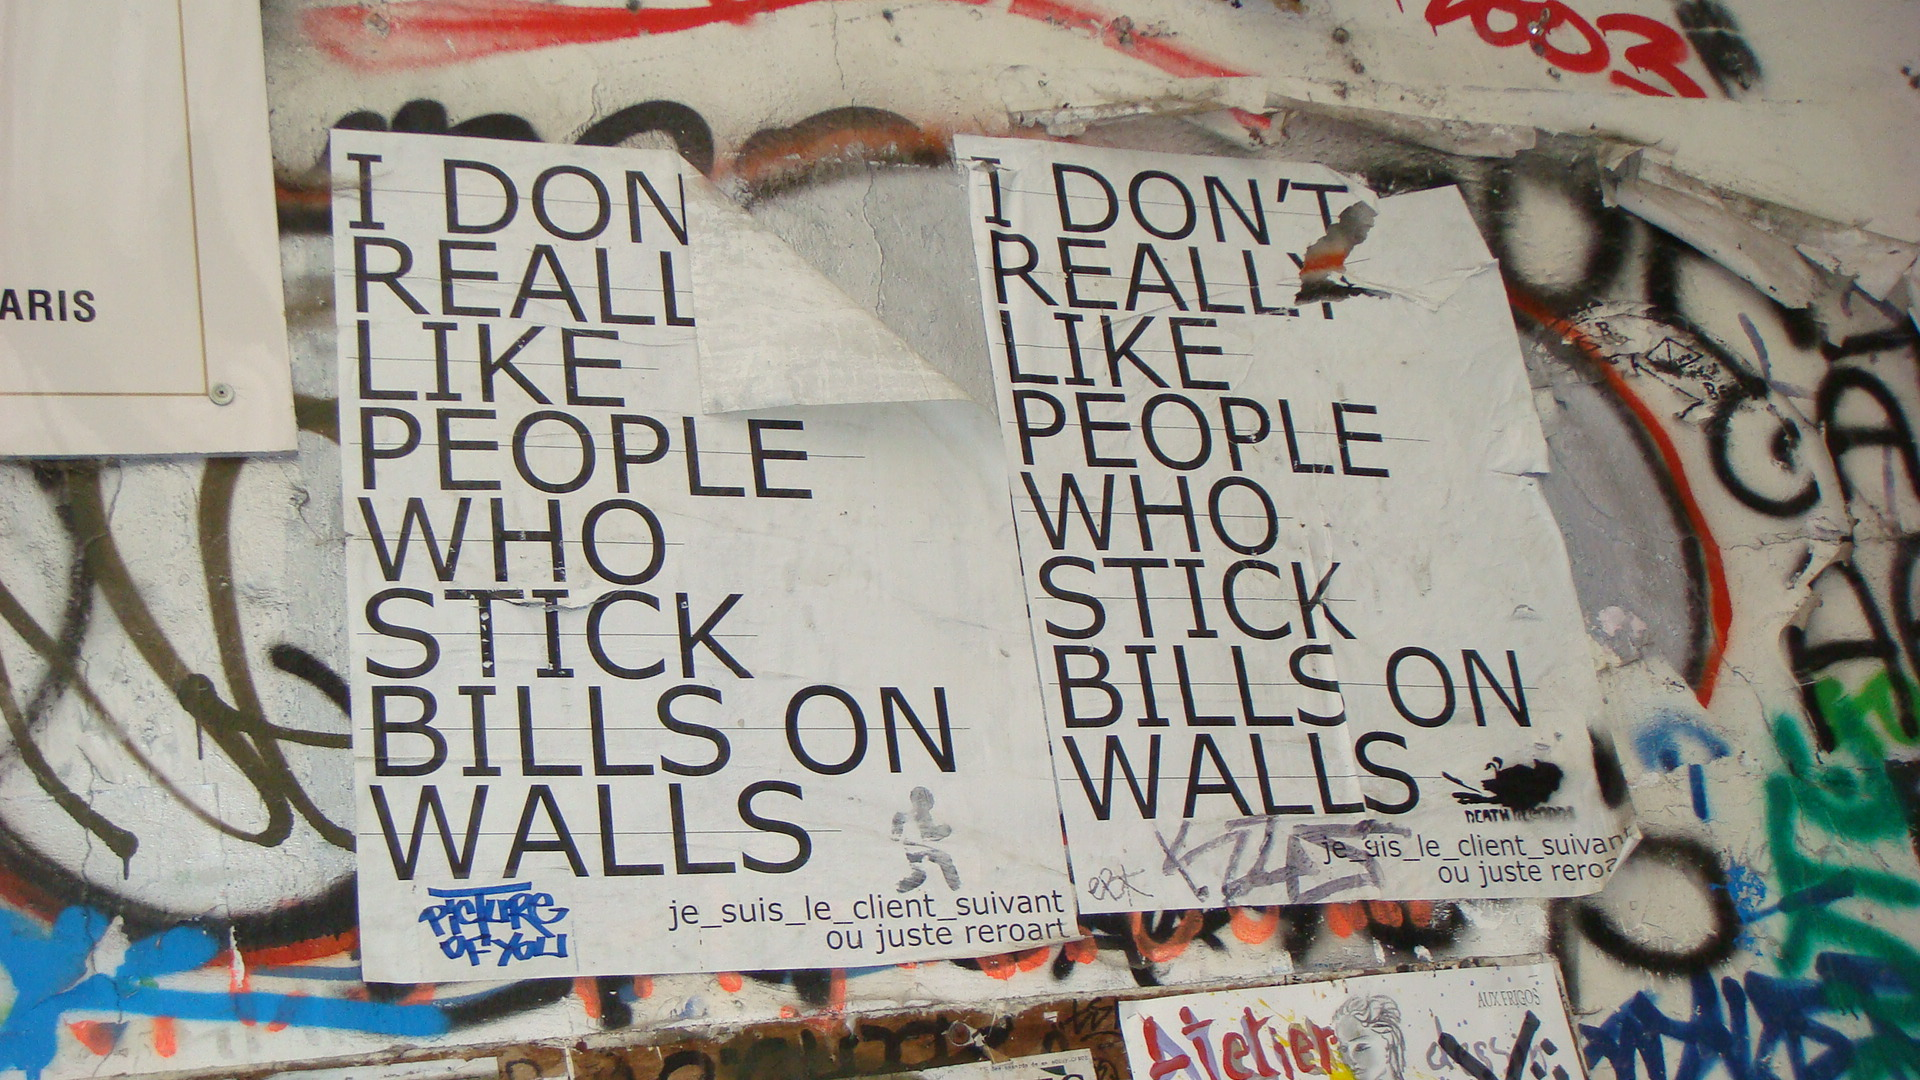 I don't really like (Urban art, Paris)